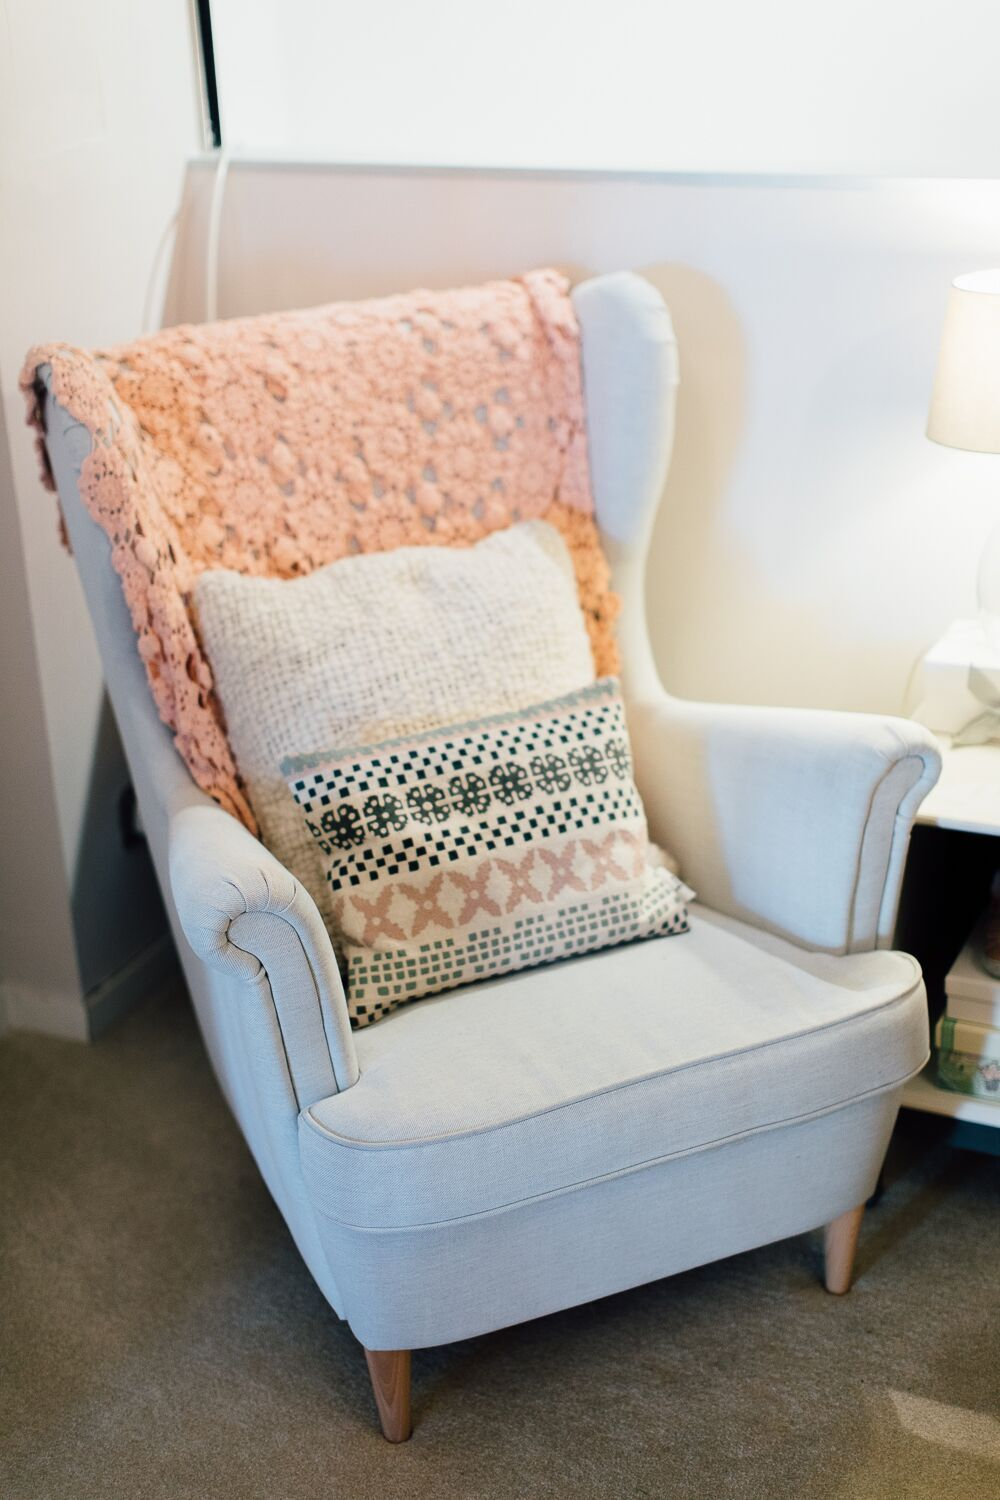 Baby Nursing Chair Monochrome And Pink Nursery In An Nyc Style Loft Apartment Baby